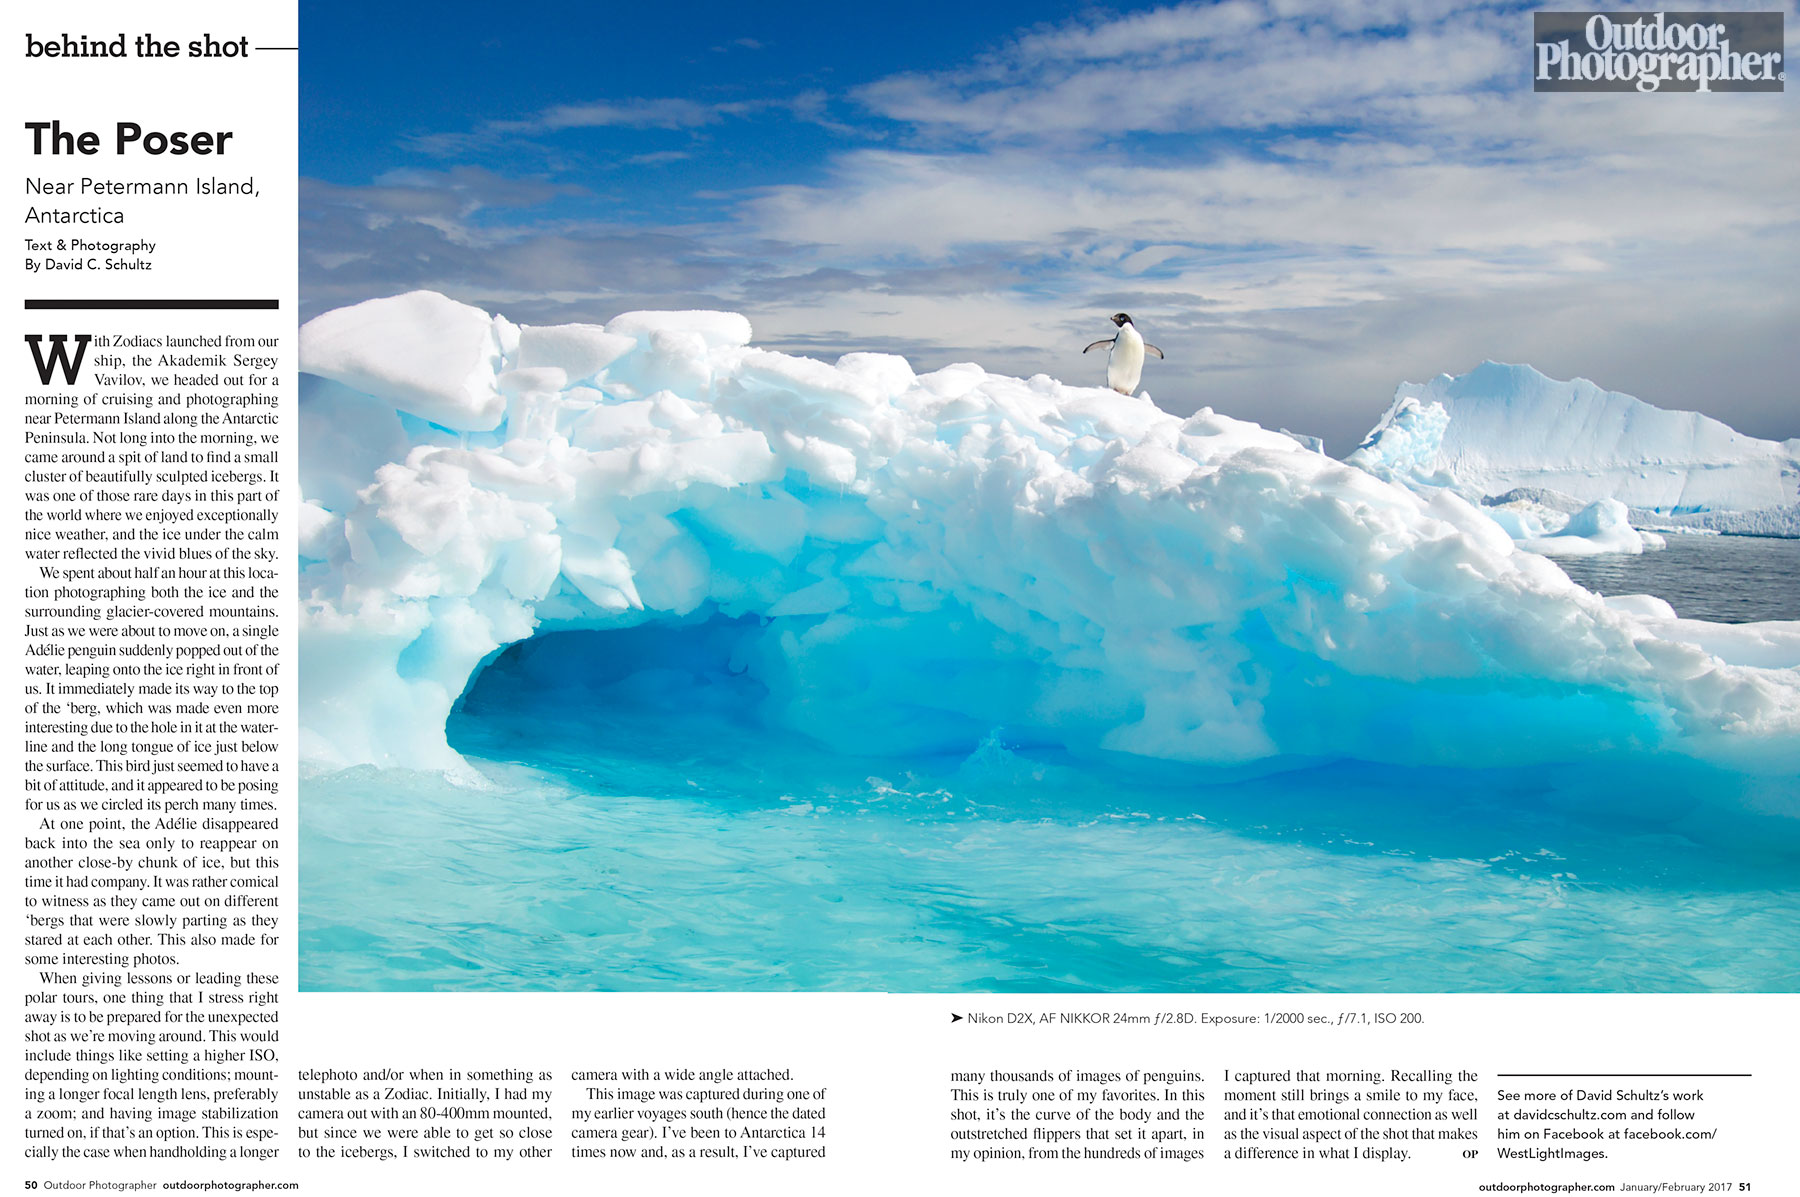 Outdoor Photographer Magazine Behind the Shot by David C Schultz